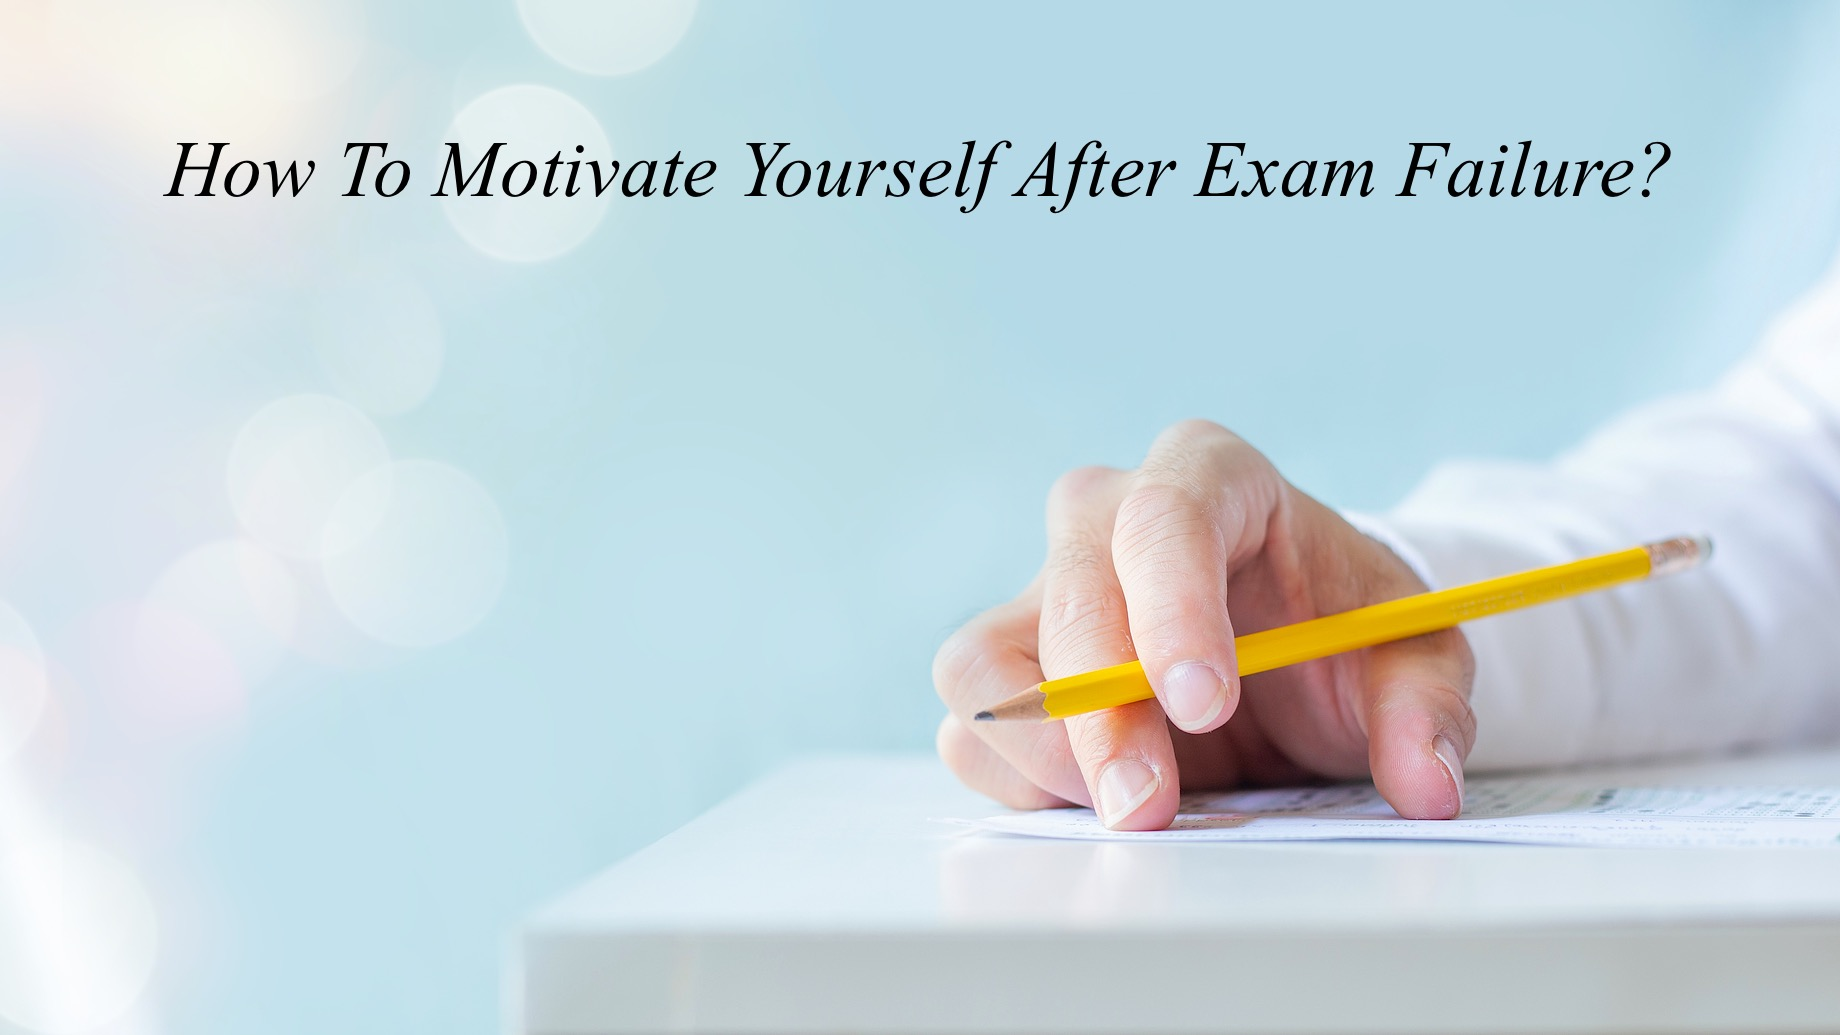 How To Motivate Yourself After Exam Failure?